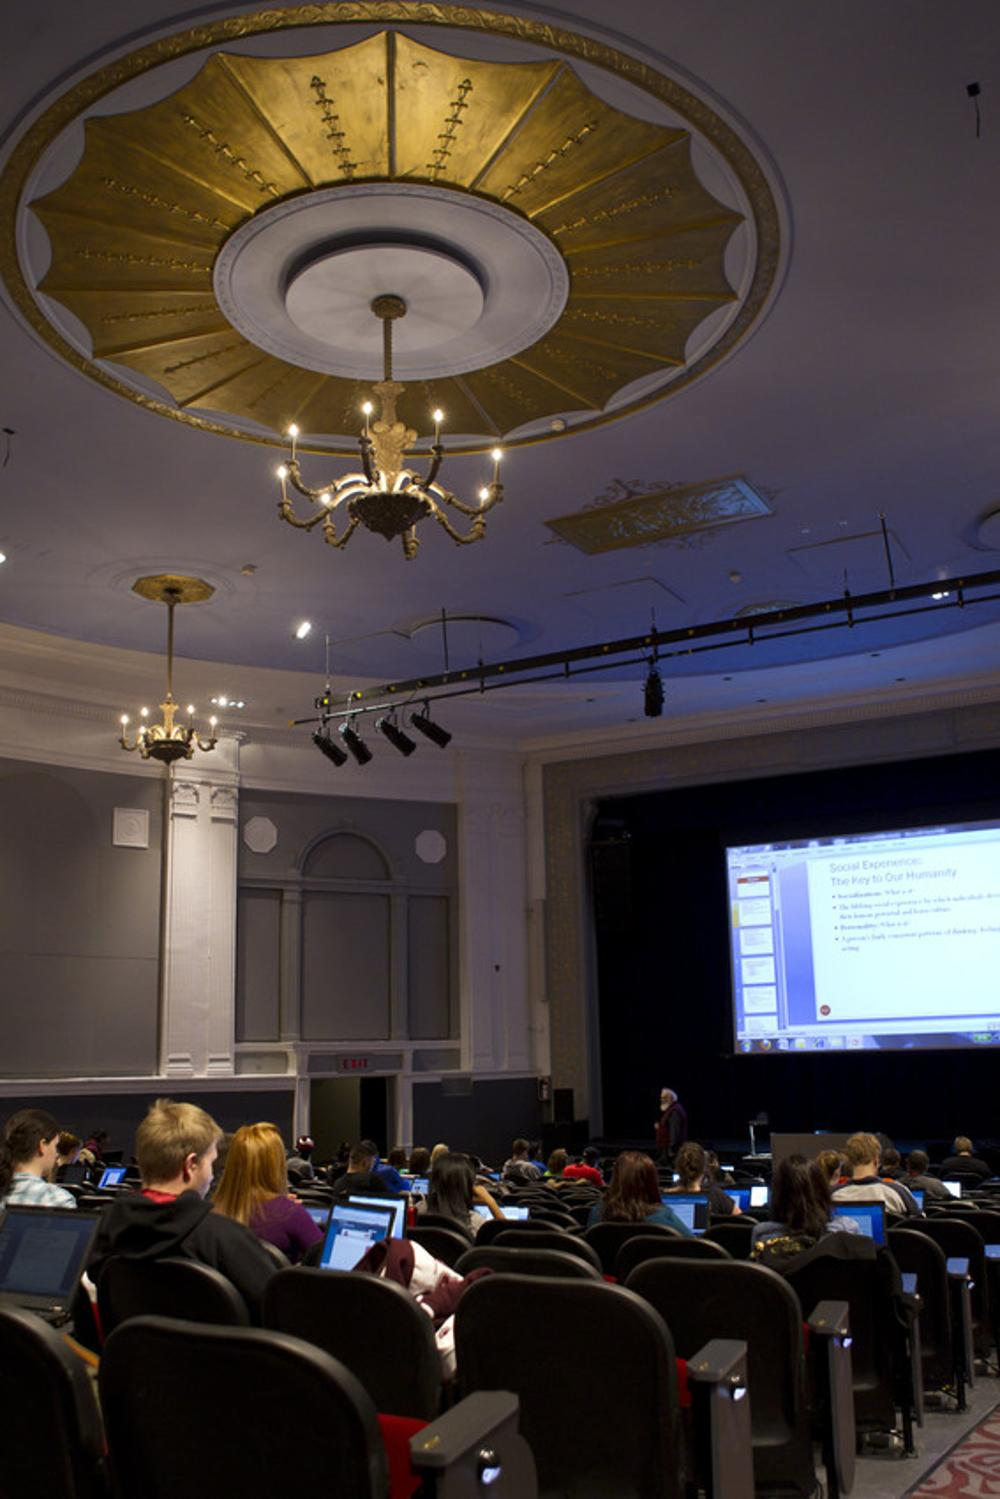 A lecture at the Regent Theatre.  Some students are on laptops.